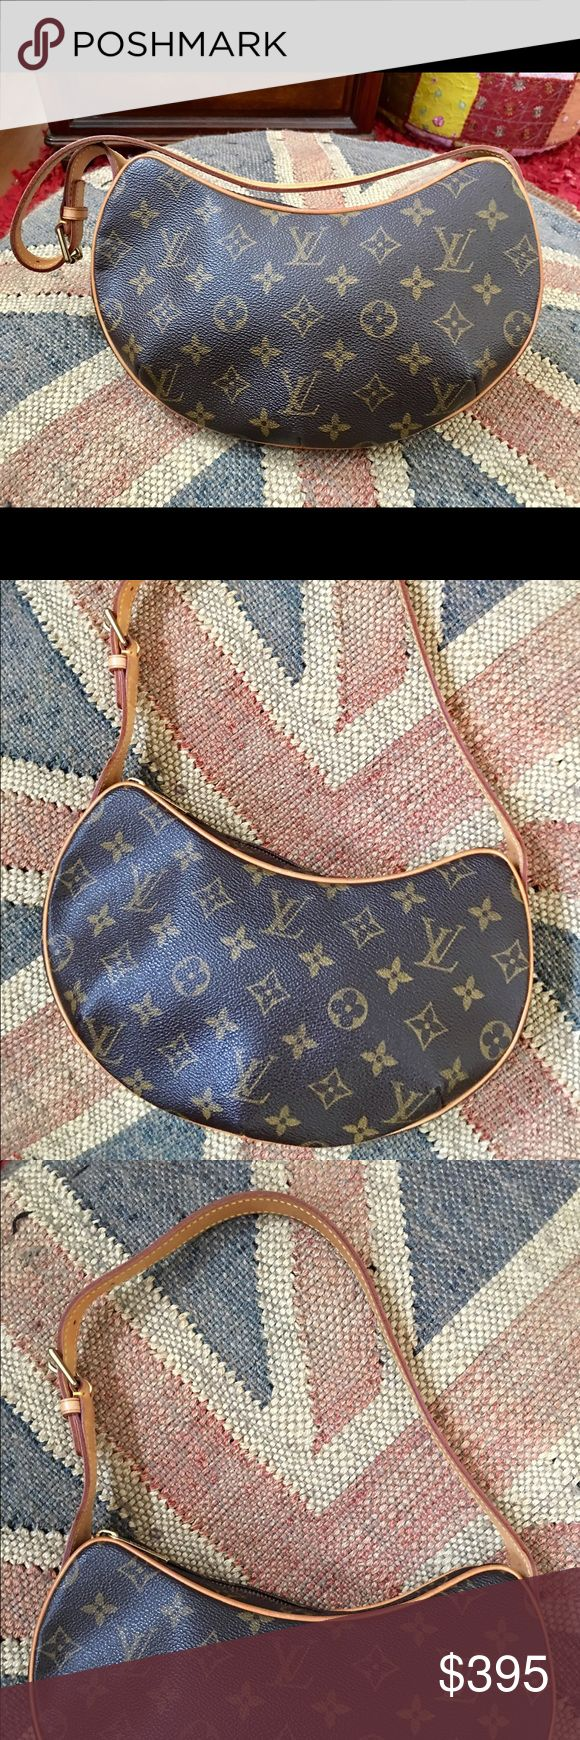 Louis Vuitton Crescent Pochette Handbag 💖Firm💖 This is an authentic Louis Vuitton monogram Pochette handbag shoulder bag. Gently used. Comes with dust cover bag and is an excellent condition as you can see from the photos. Some very minor wear on the shoulder strap, as you can see in the photo but it is barely noticeable. measures 10 1/2 inches long by 7 inches high by 2 inches deep. 9 inch shoulder strap drop. No trades please. Price is firm. Louis Vuitton Bags Shoulder Bags